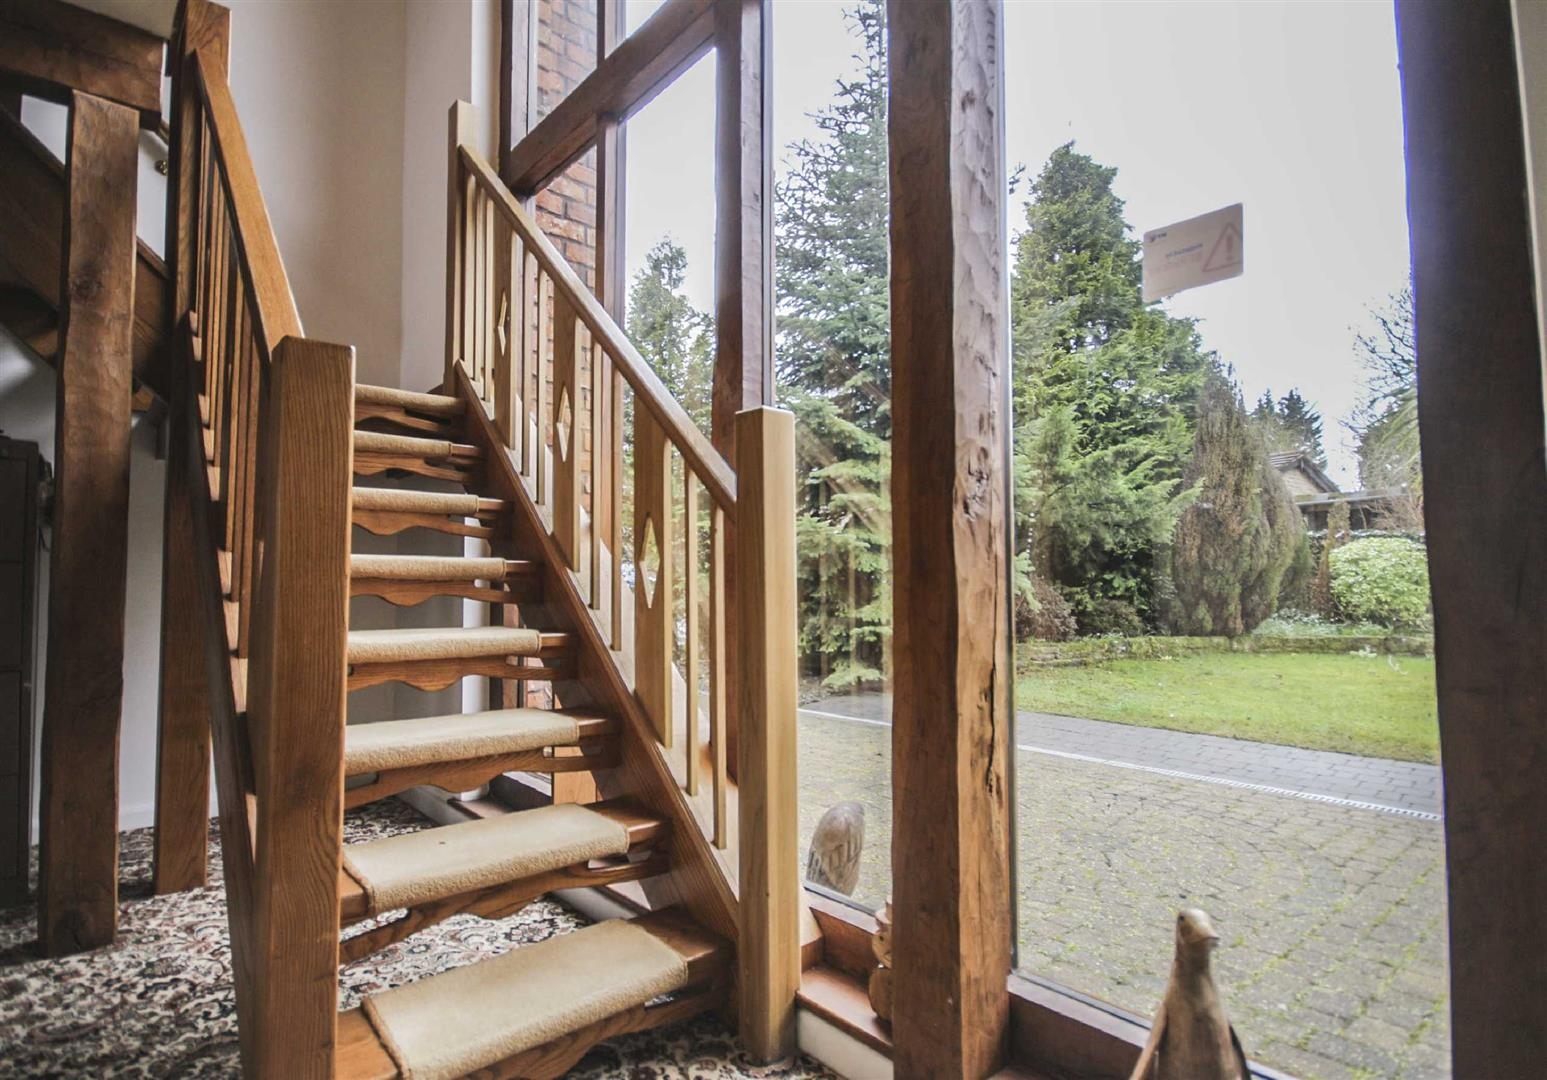 3 Bedroom Barn Conversion For Sale - Image 16